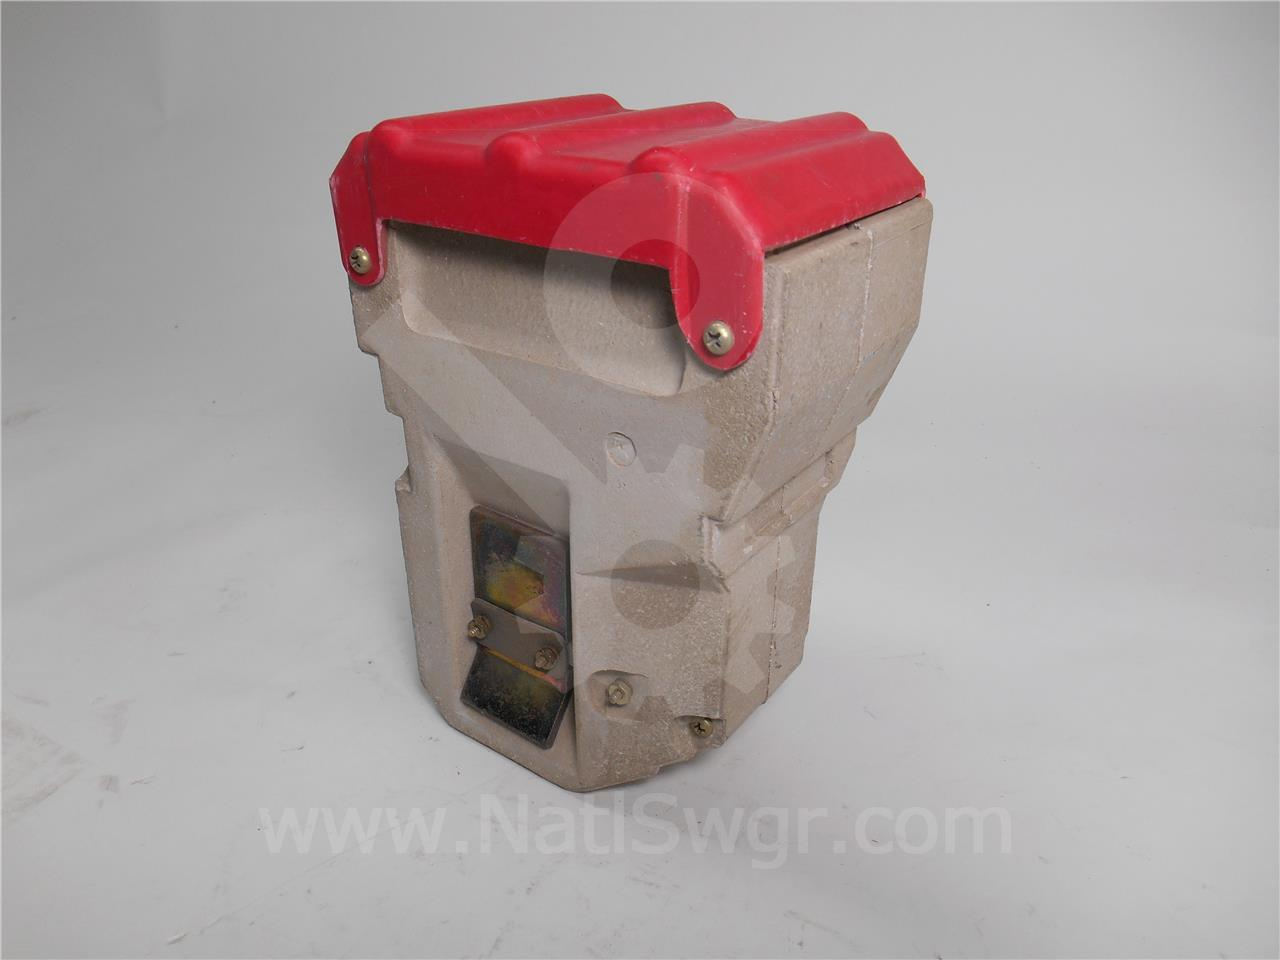 706775-T02 ABB RED ARC CHUTE ASSEMBLY FOR K-1600 / K-2000